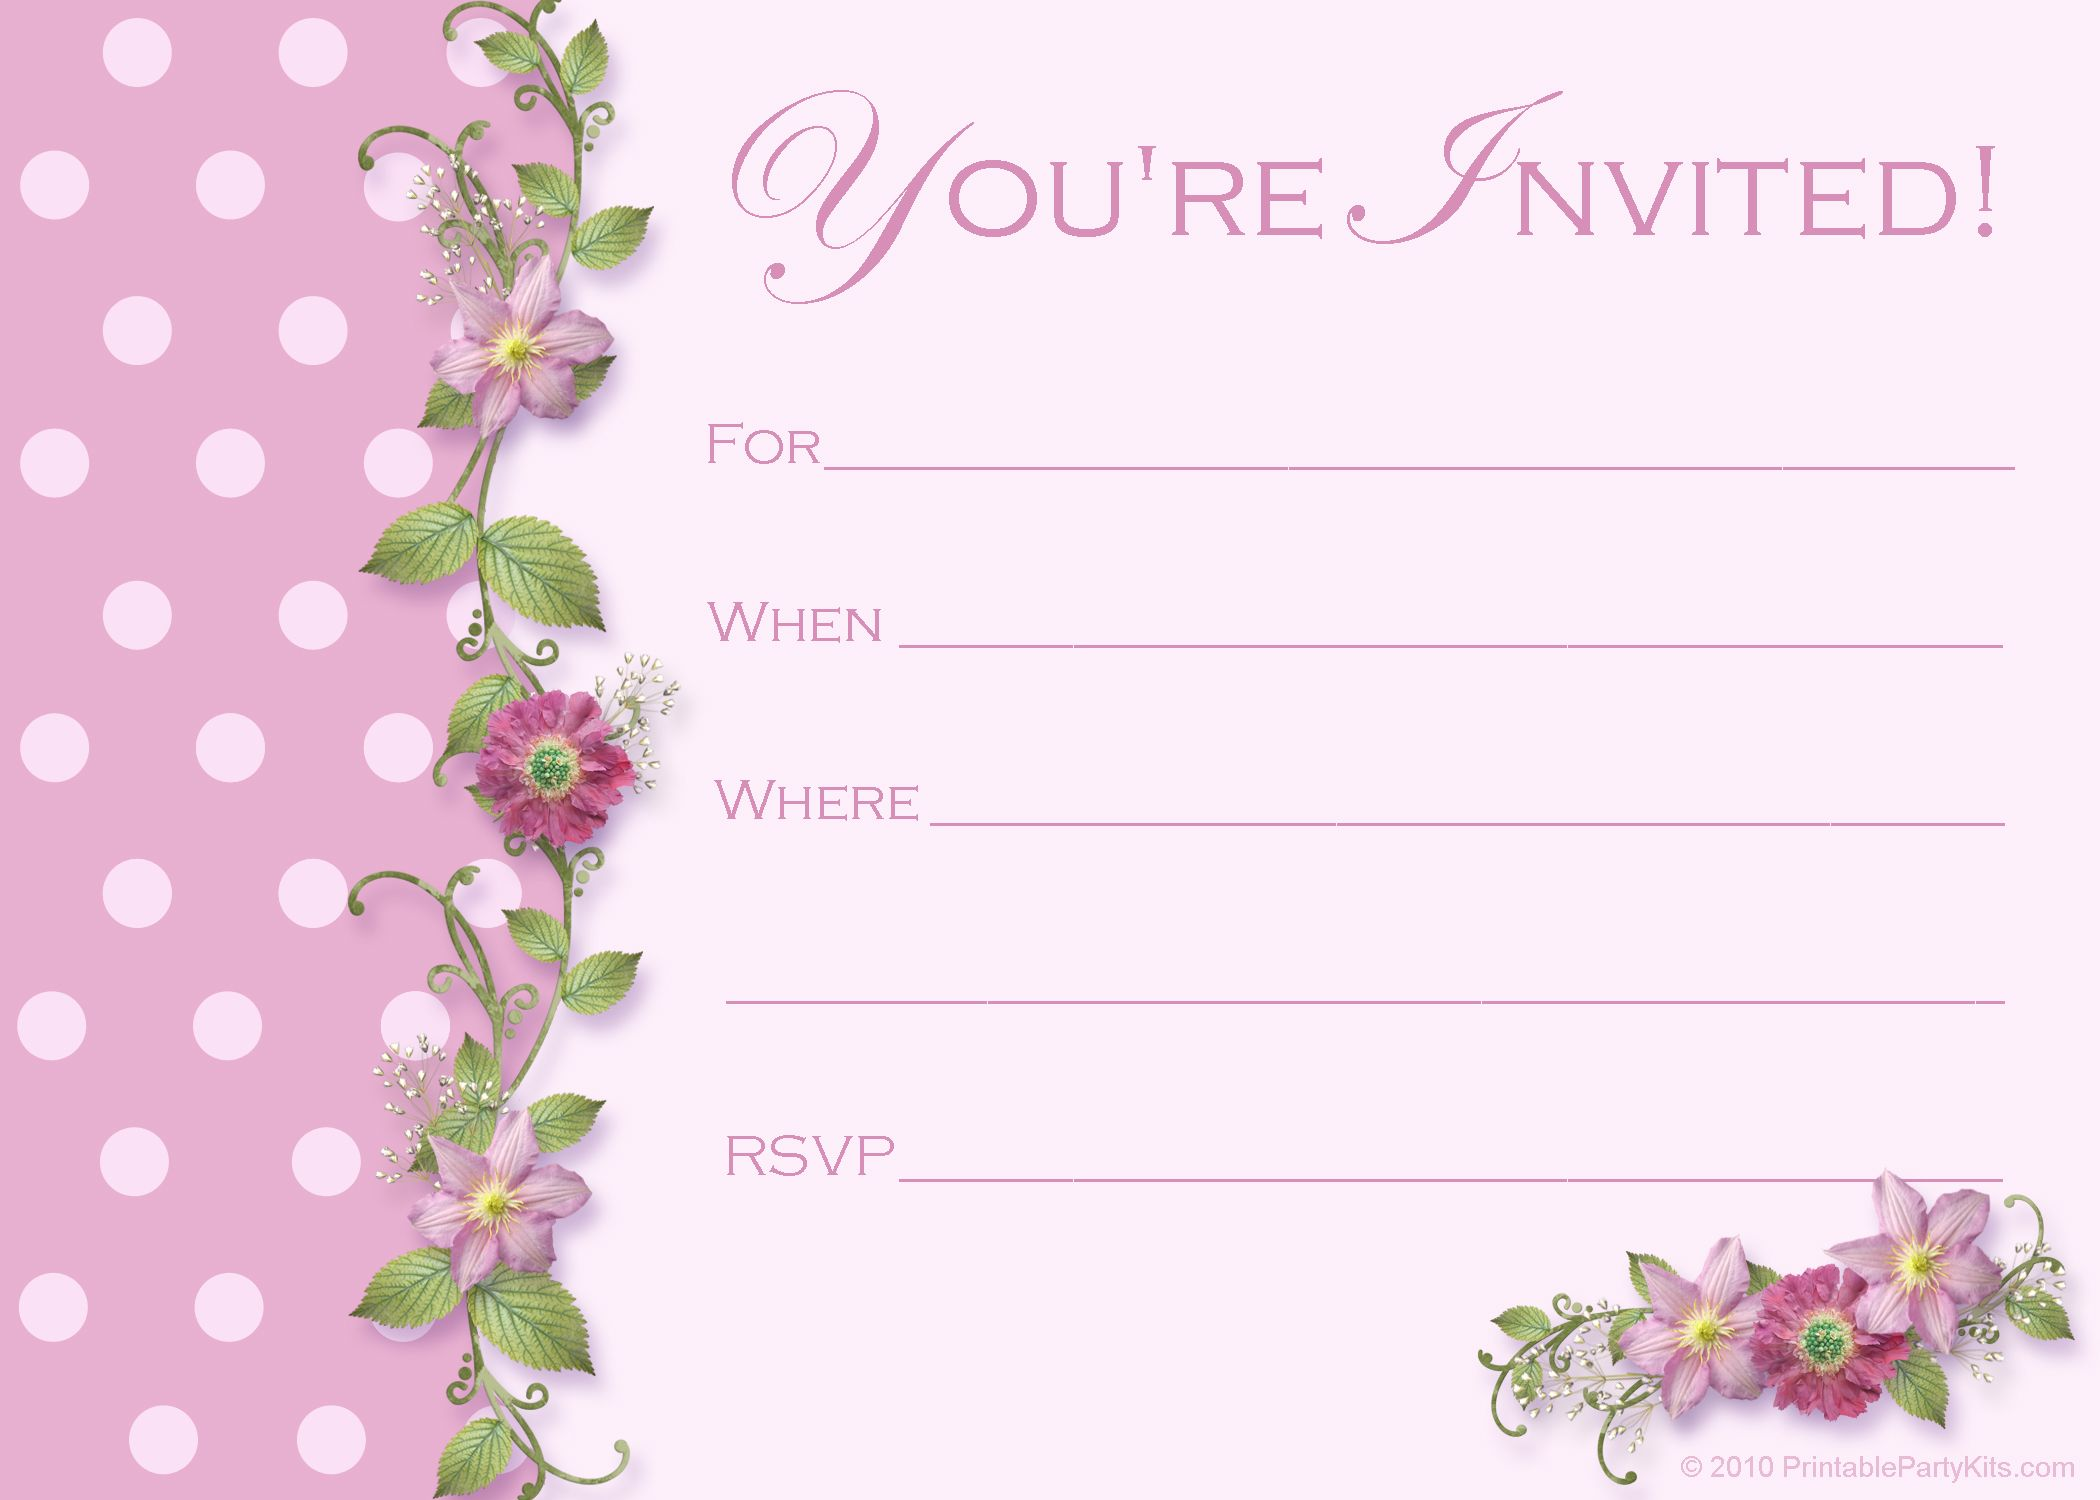 Get FREE Sweet 16 Birthday Invitations | FREE Printable Invitation ...